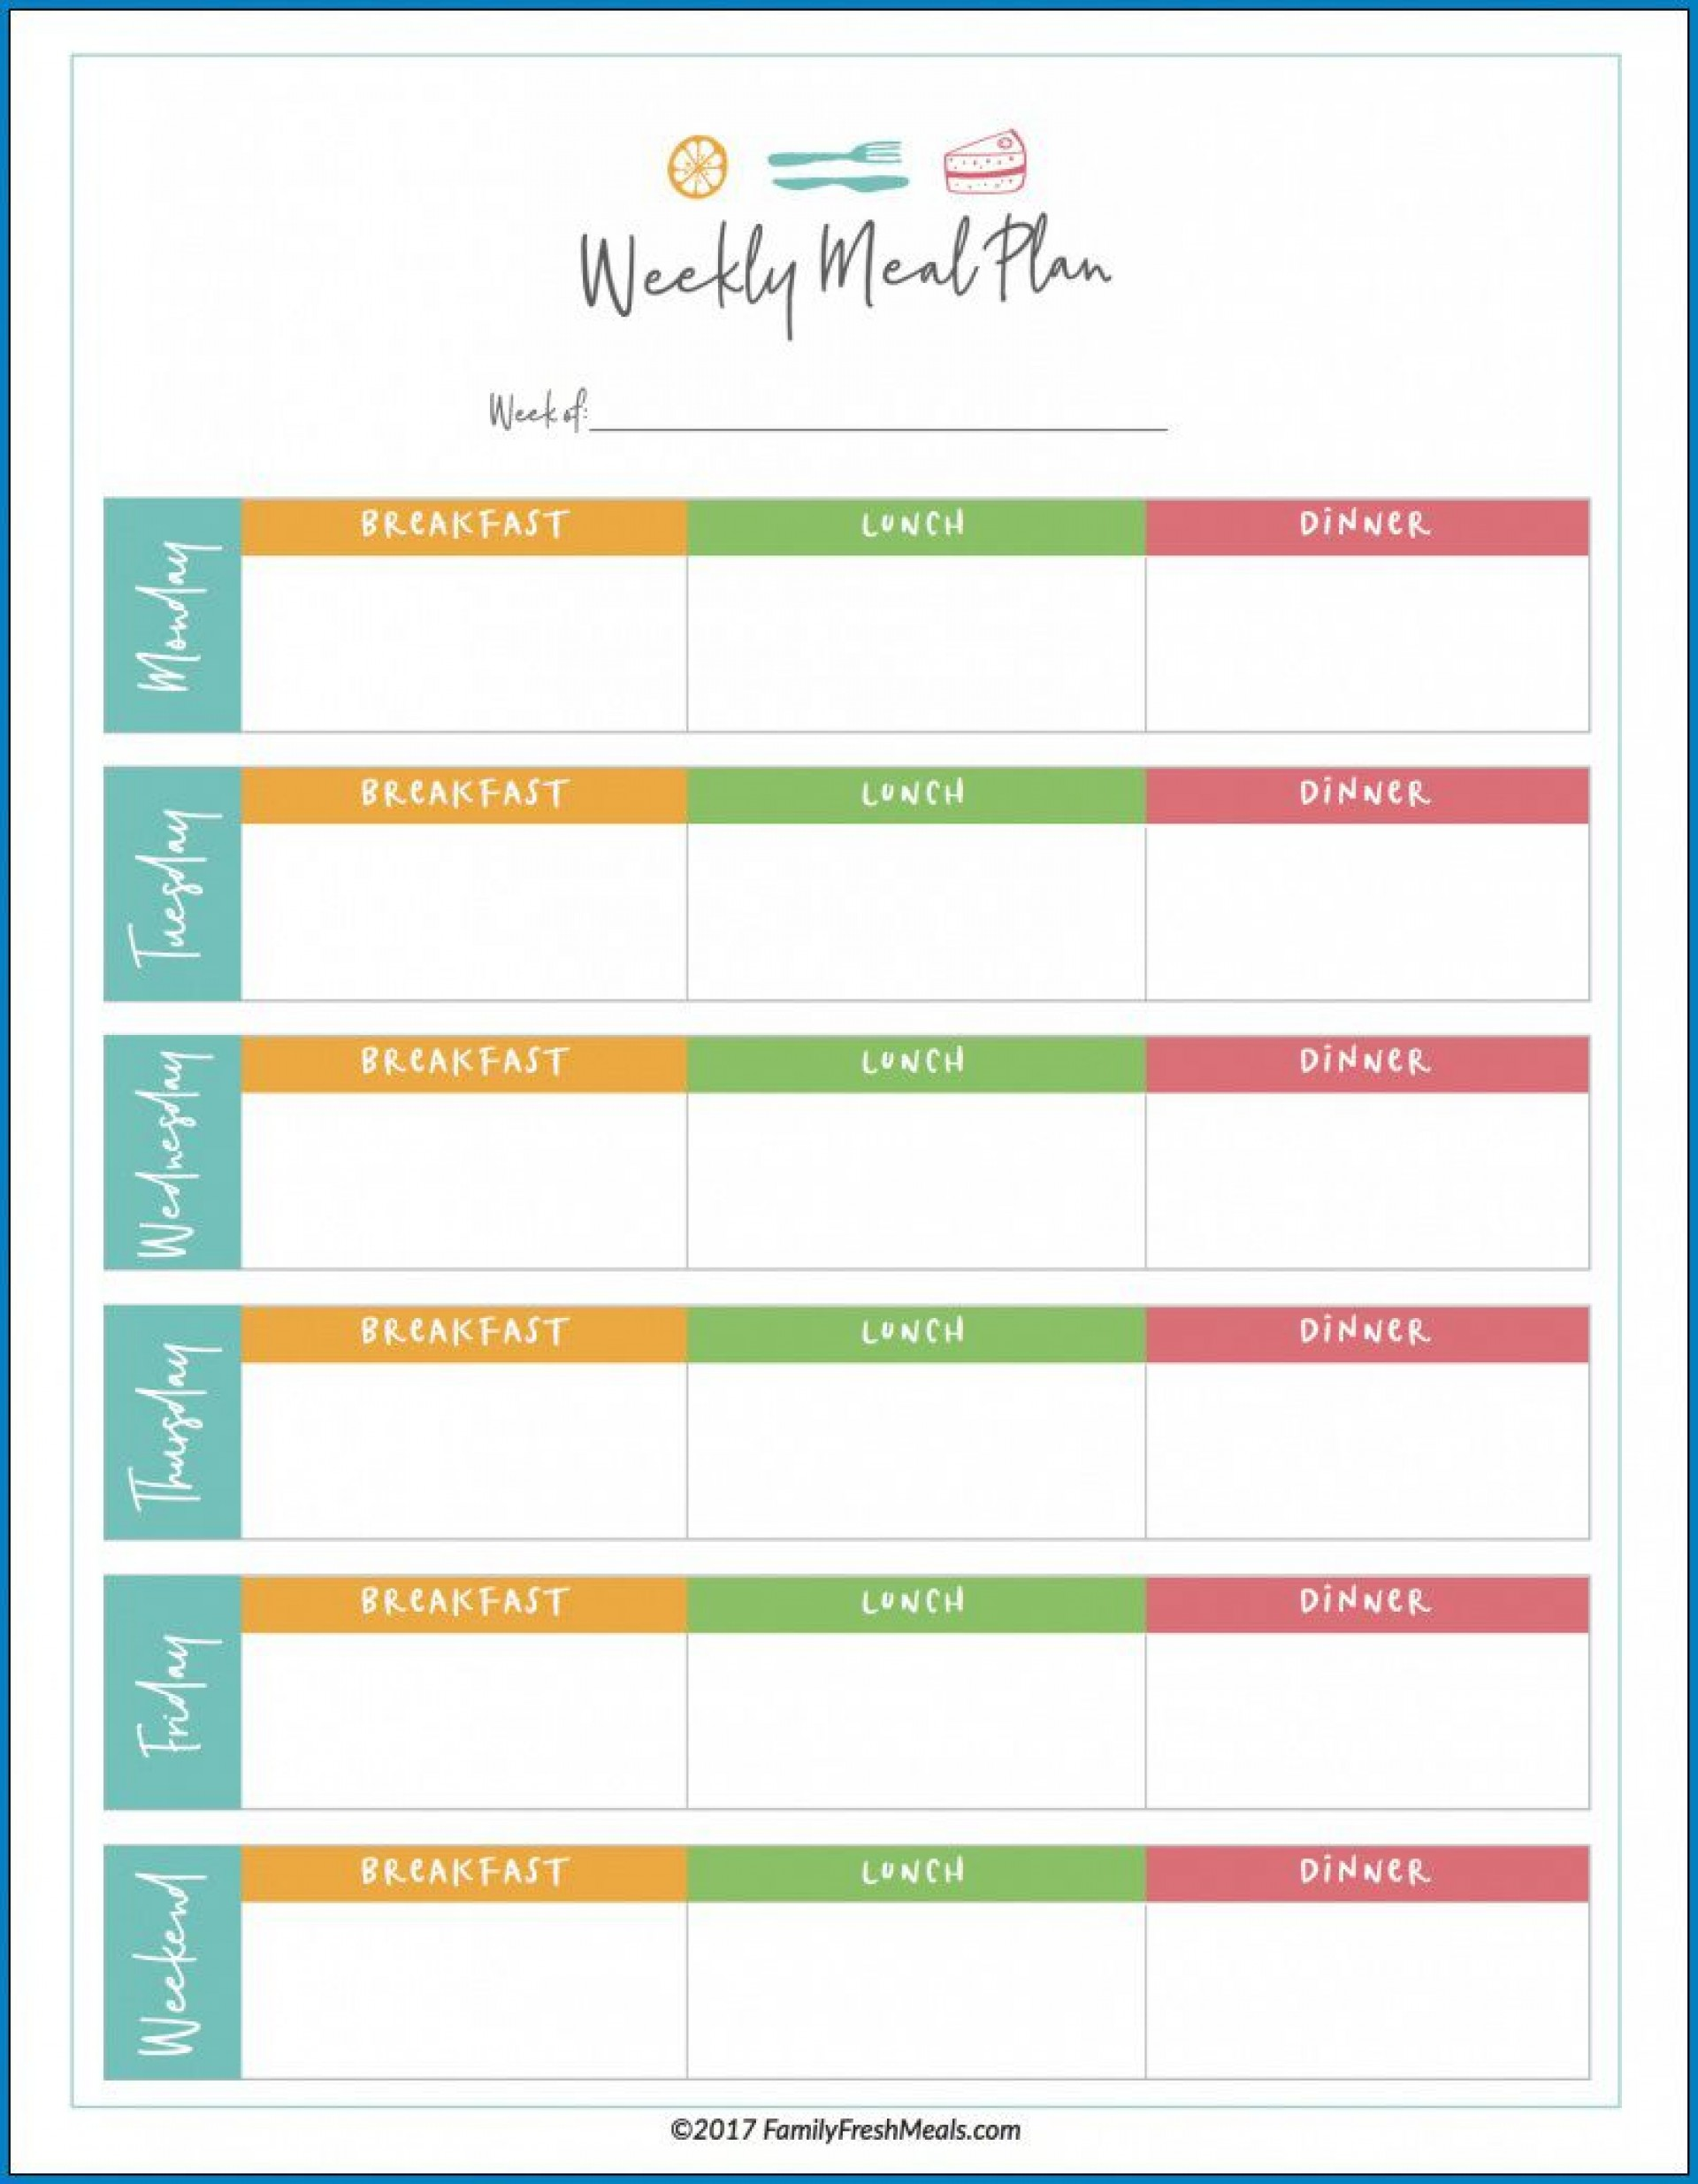 008 Unique Weekly Meal Planner Template Excel Photo  Downloadable Plan Editable1920